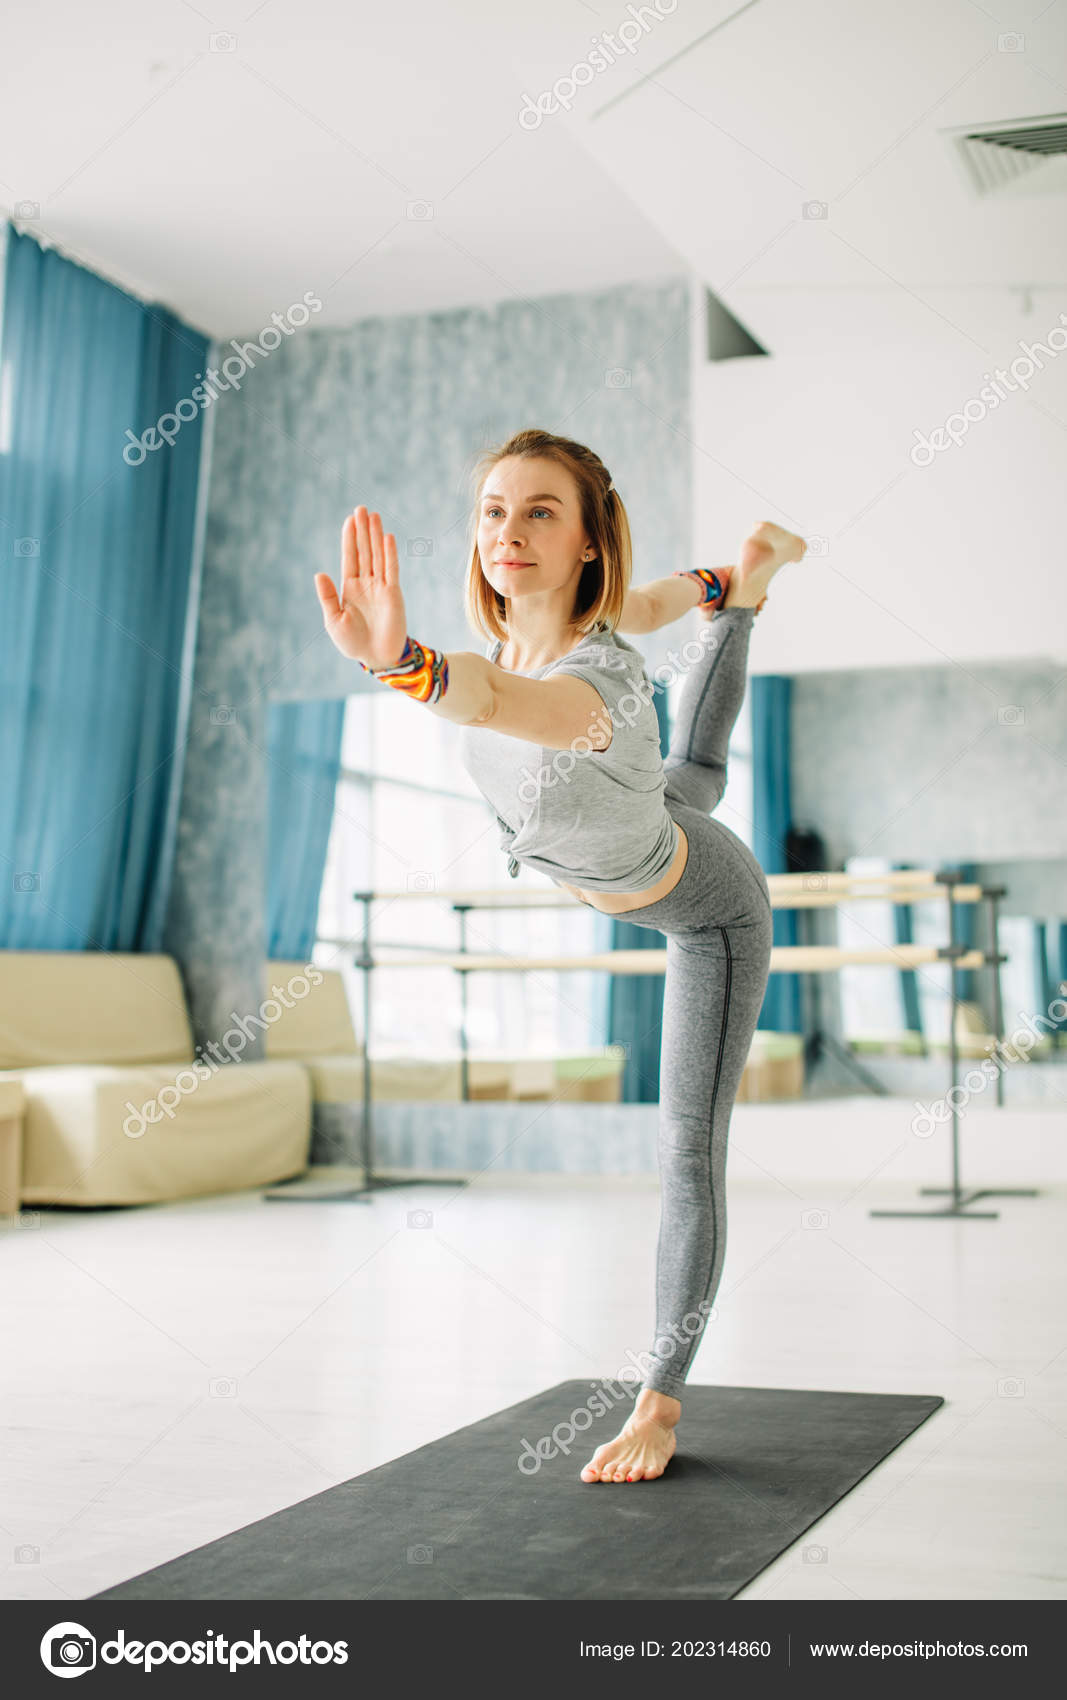 Young fit woman doing a yoga pose standing with one leg raised up. 37